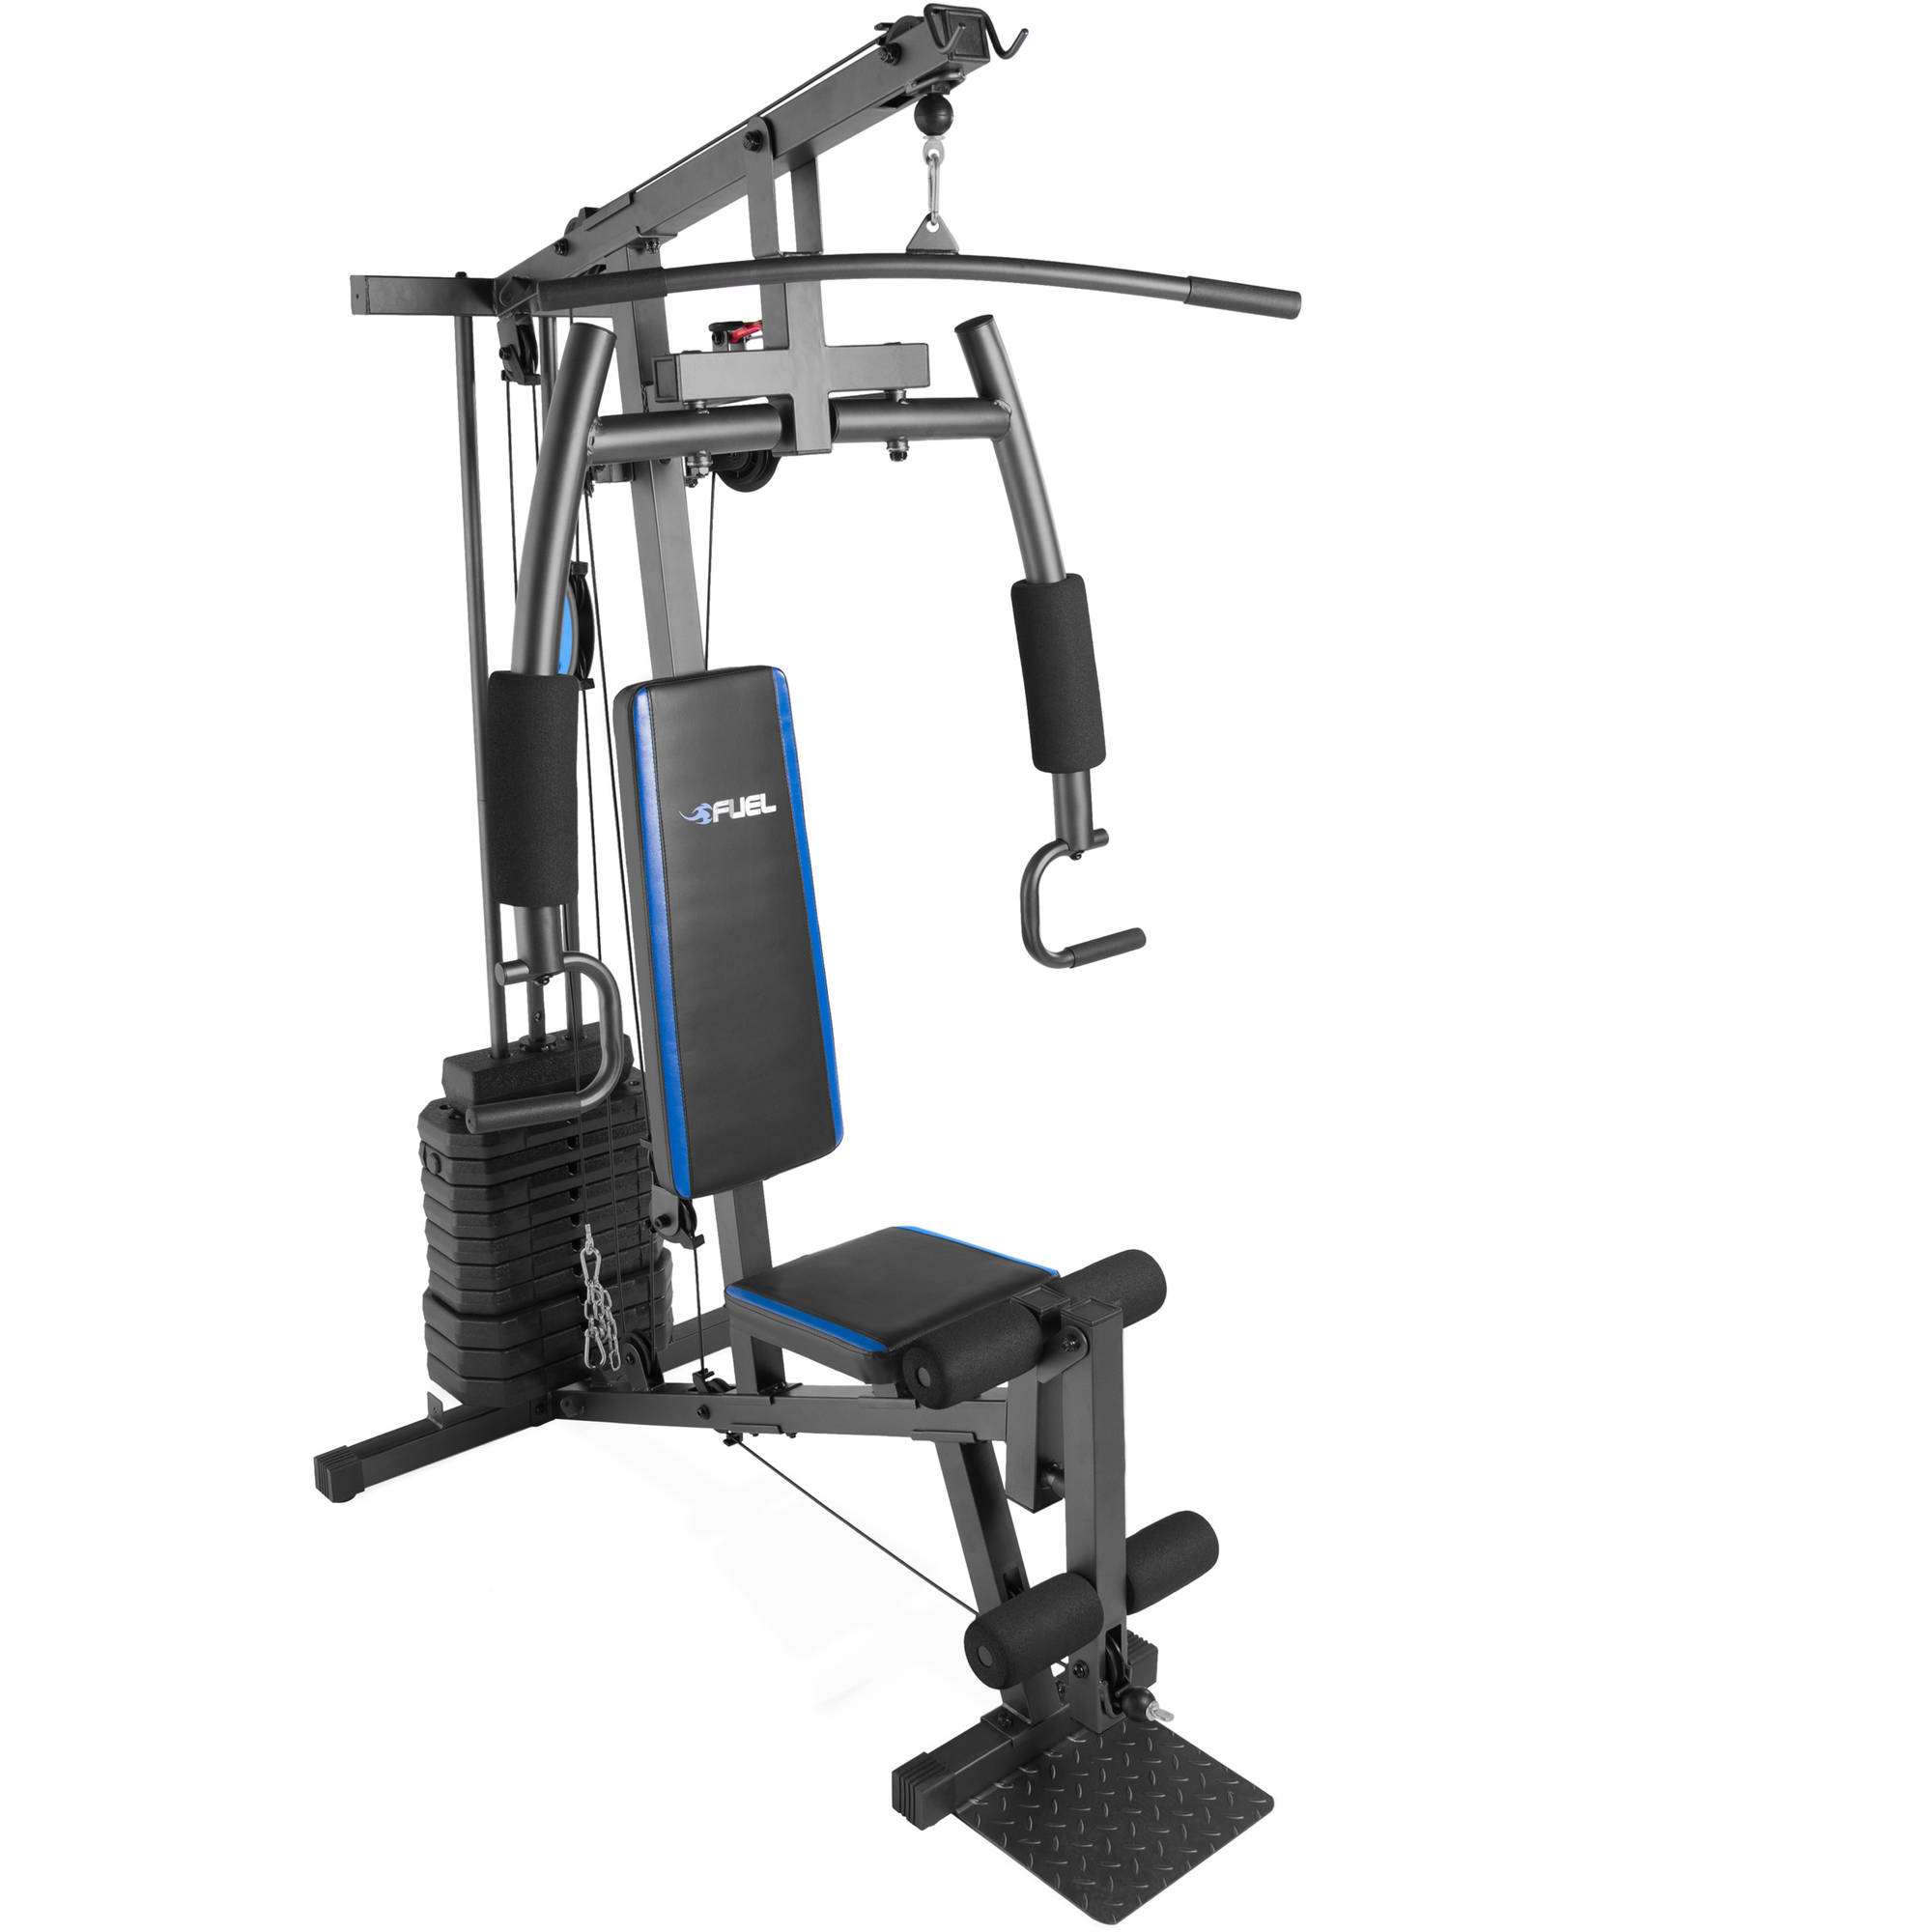 Fuel Pureformance Home Gym with 125 lb Weight Stack, Assorted Styles